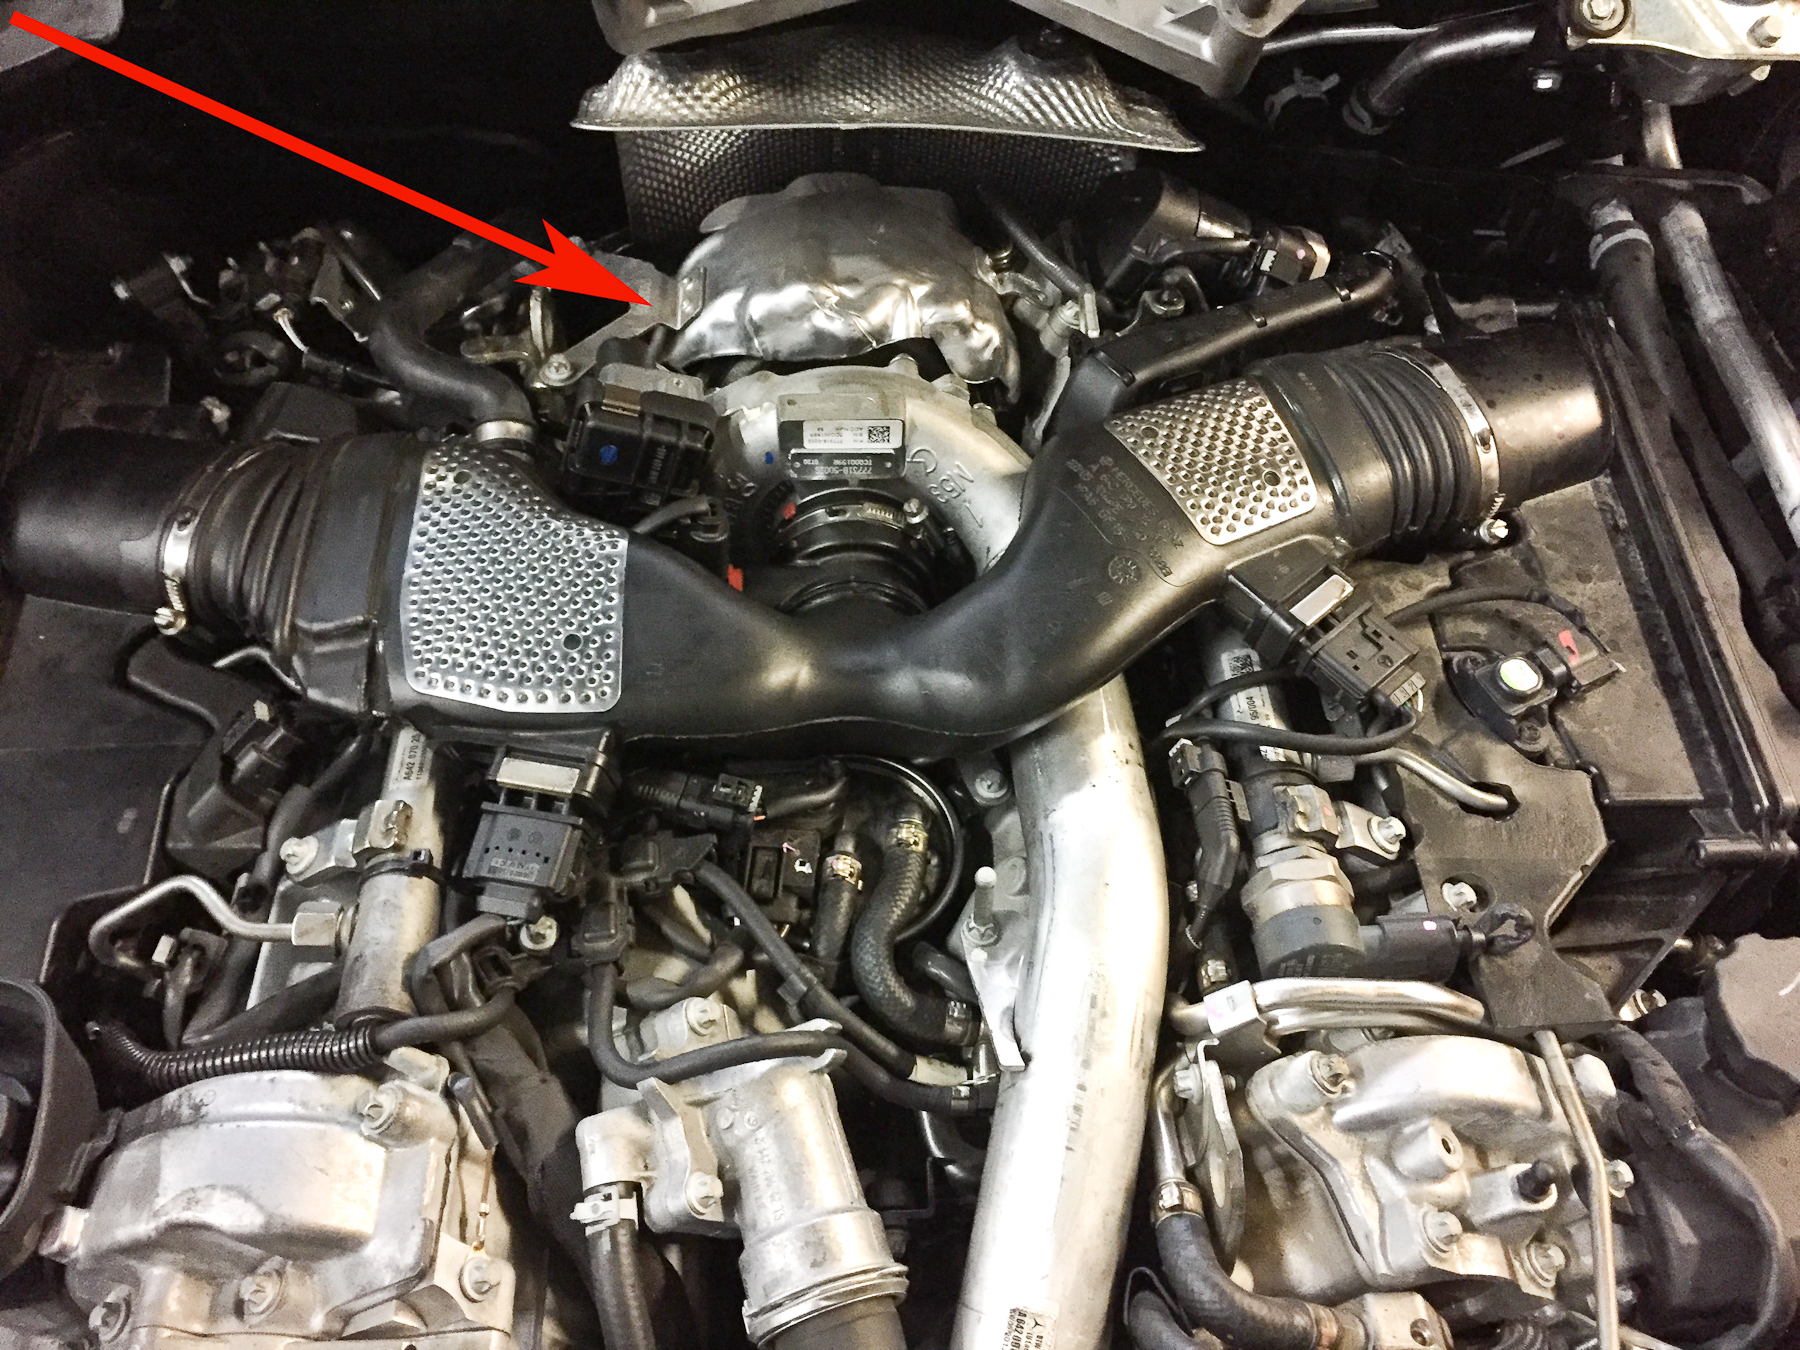 2012 Mercedes-Benz GL350 Turbocharger Replacement- Pawlik